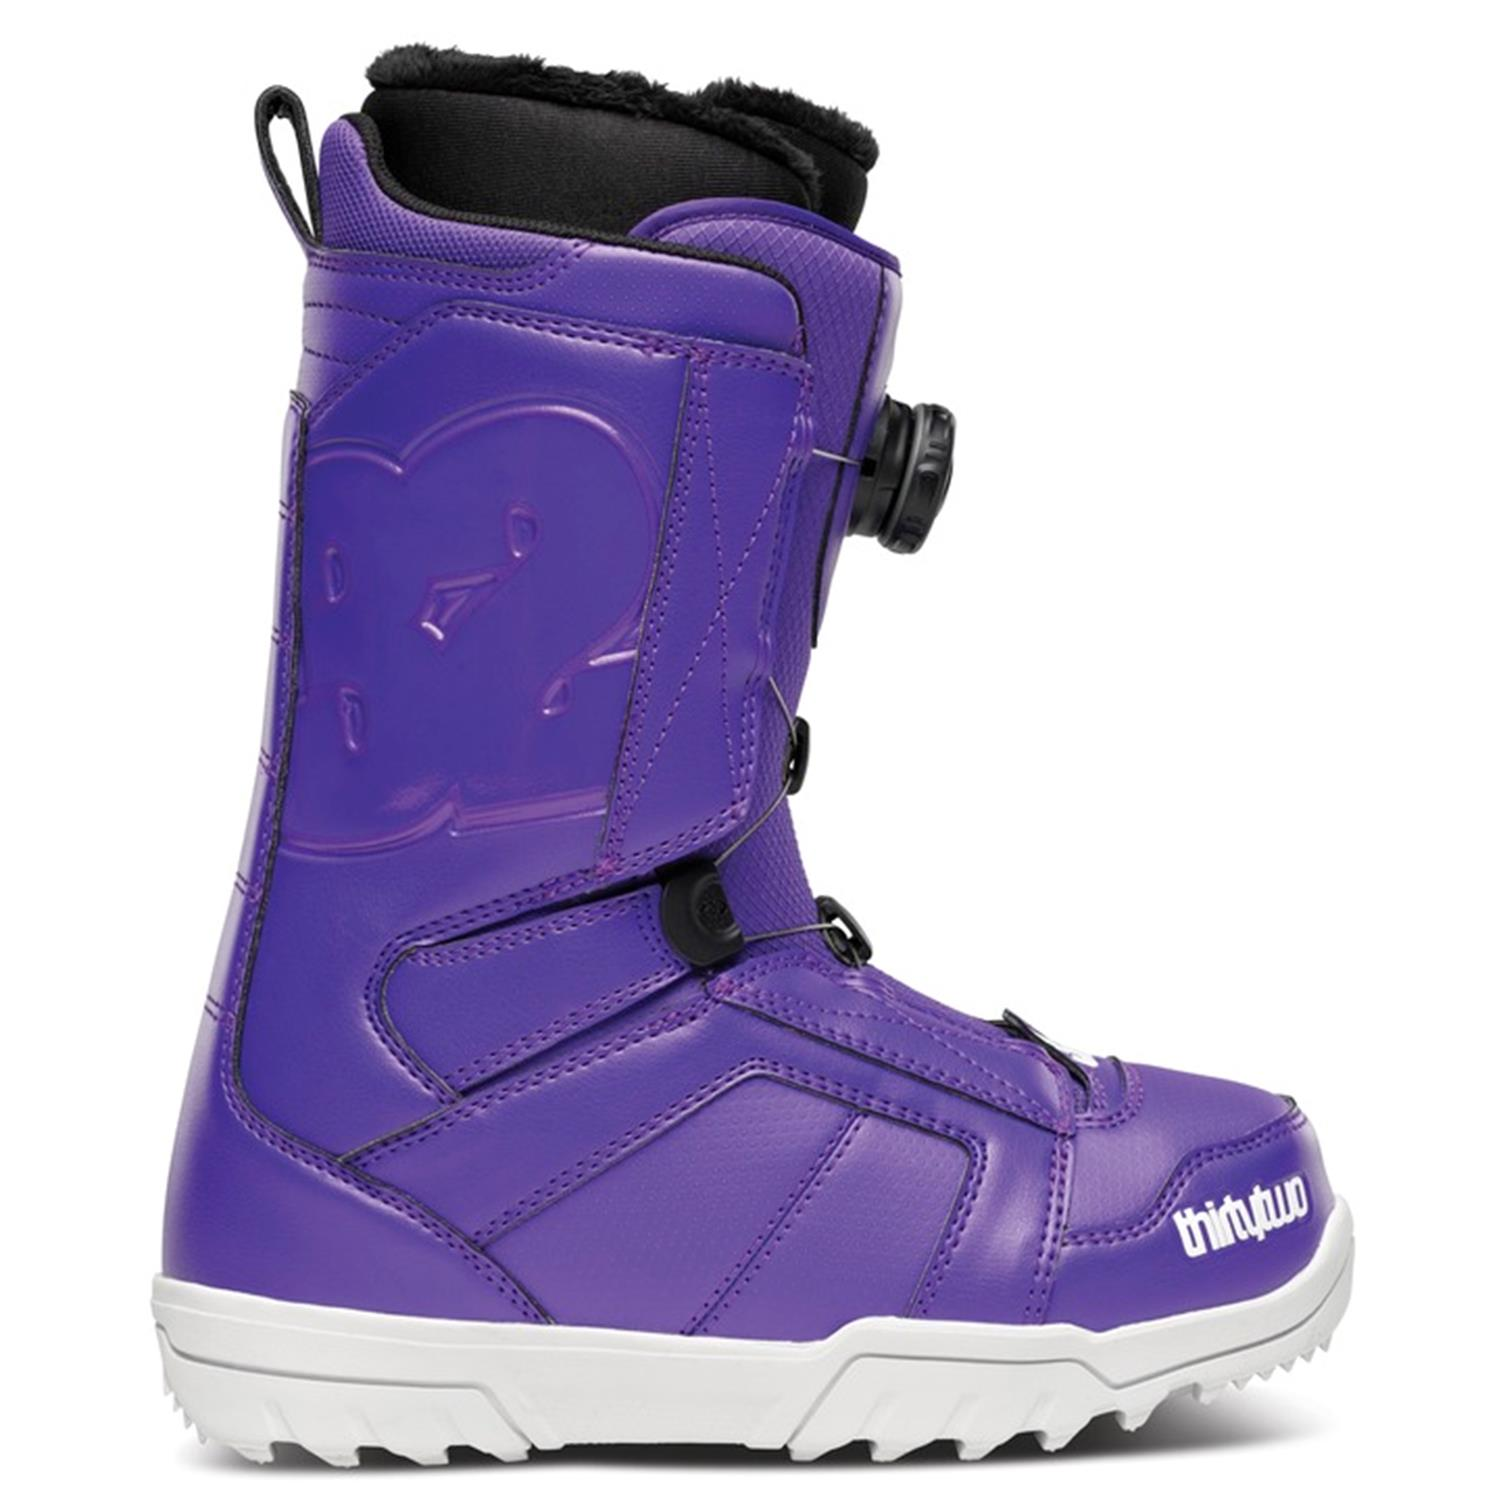 32 stw boa snowboard boots s 2014 evo outlet